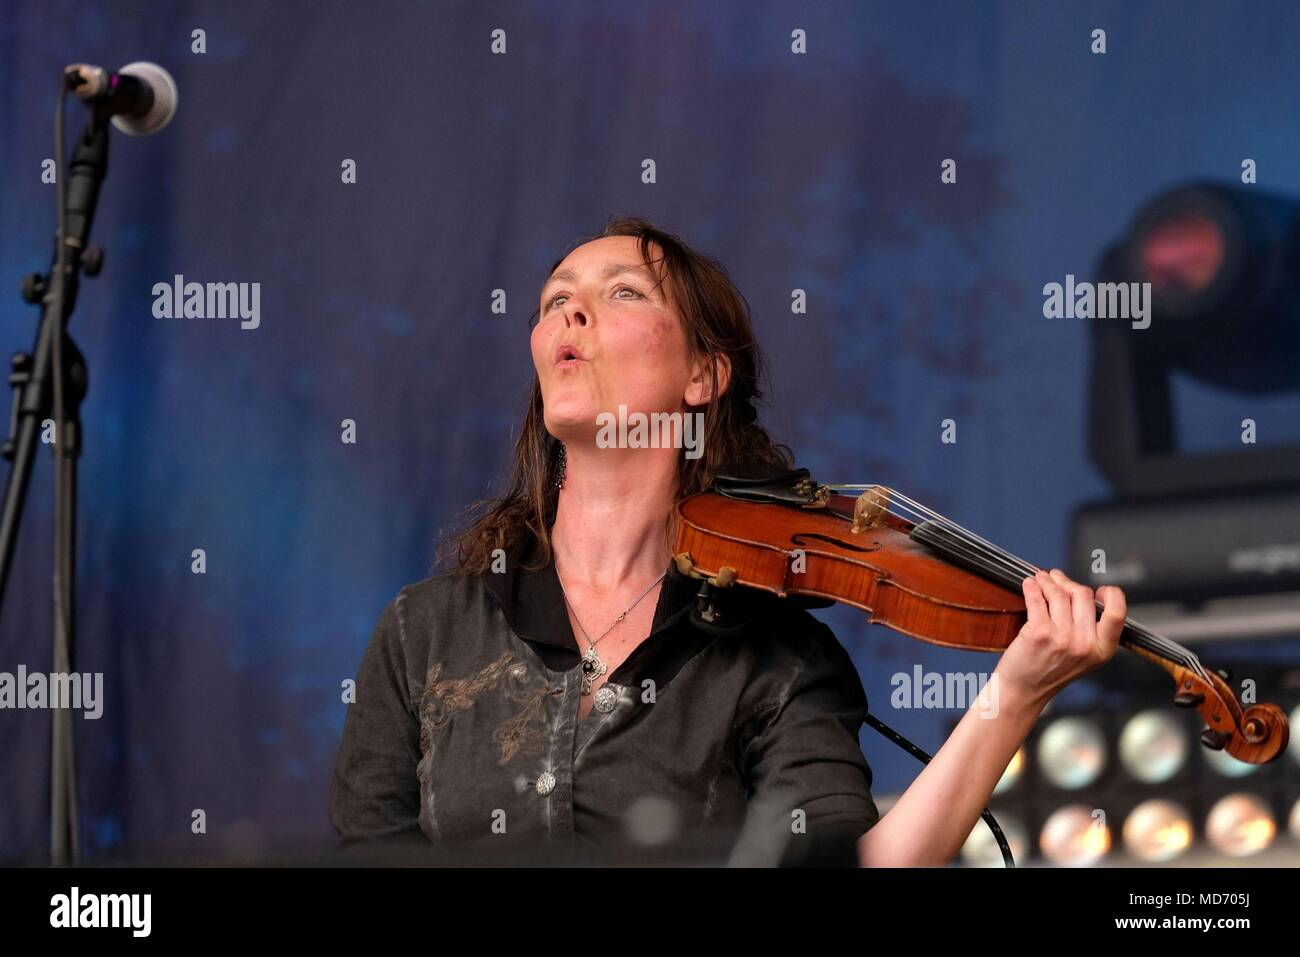 Quill performing at Cropredy Festival 2017 - Stock Image